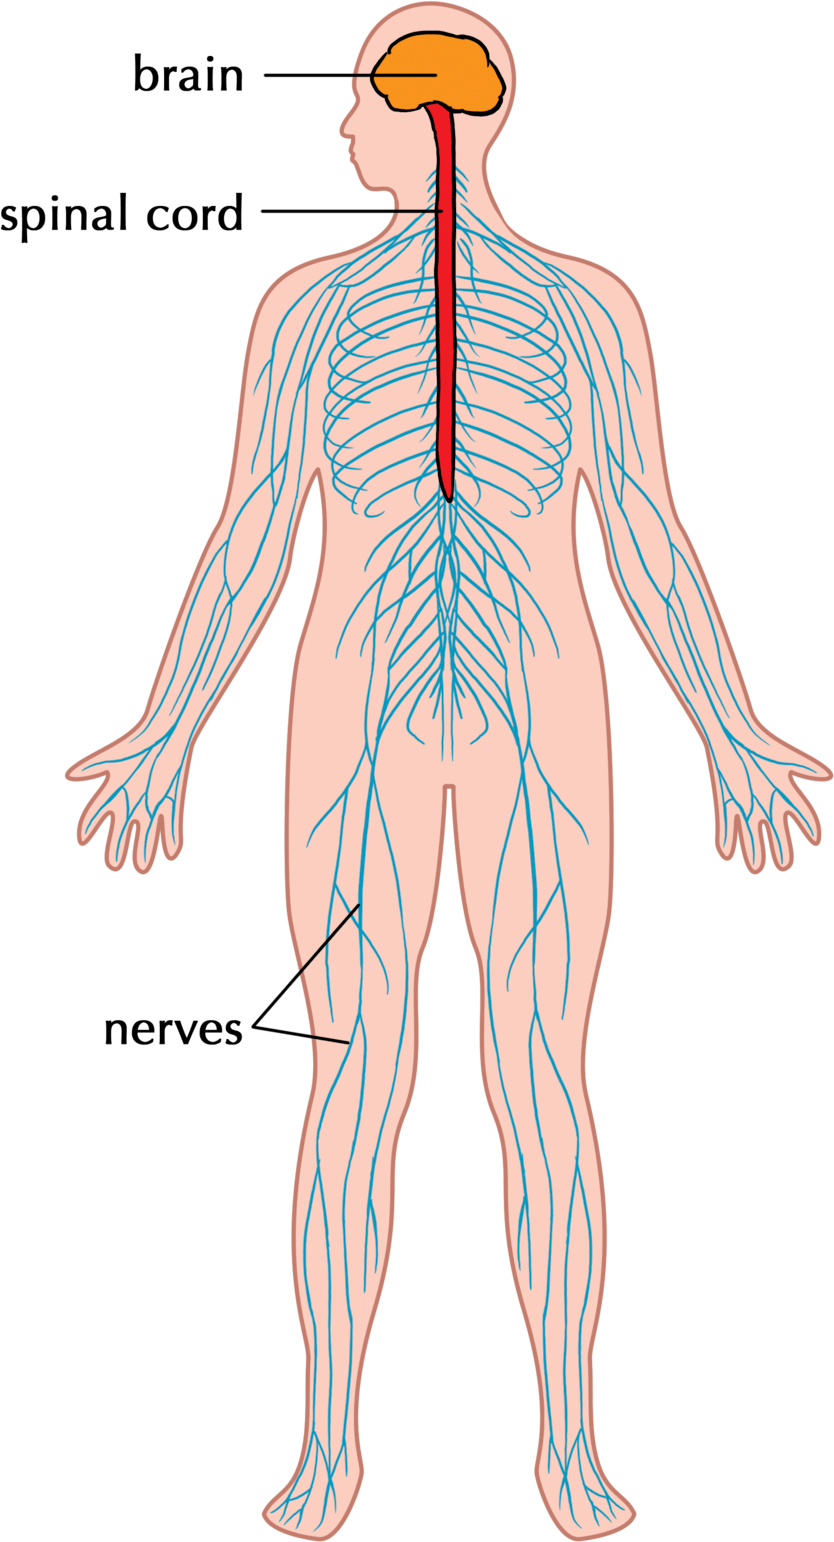 hight resolution of the human nervous system can be understood as a network of interconnected sensors and processors siyavula education flickr cc by